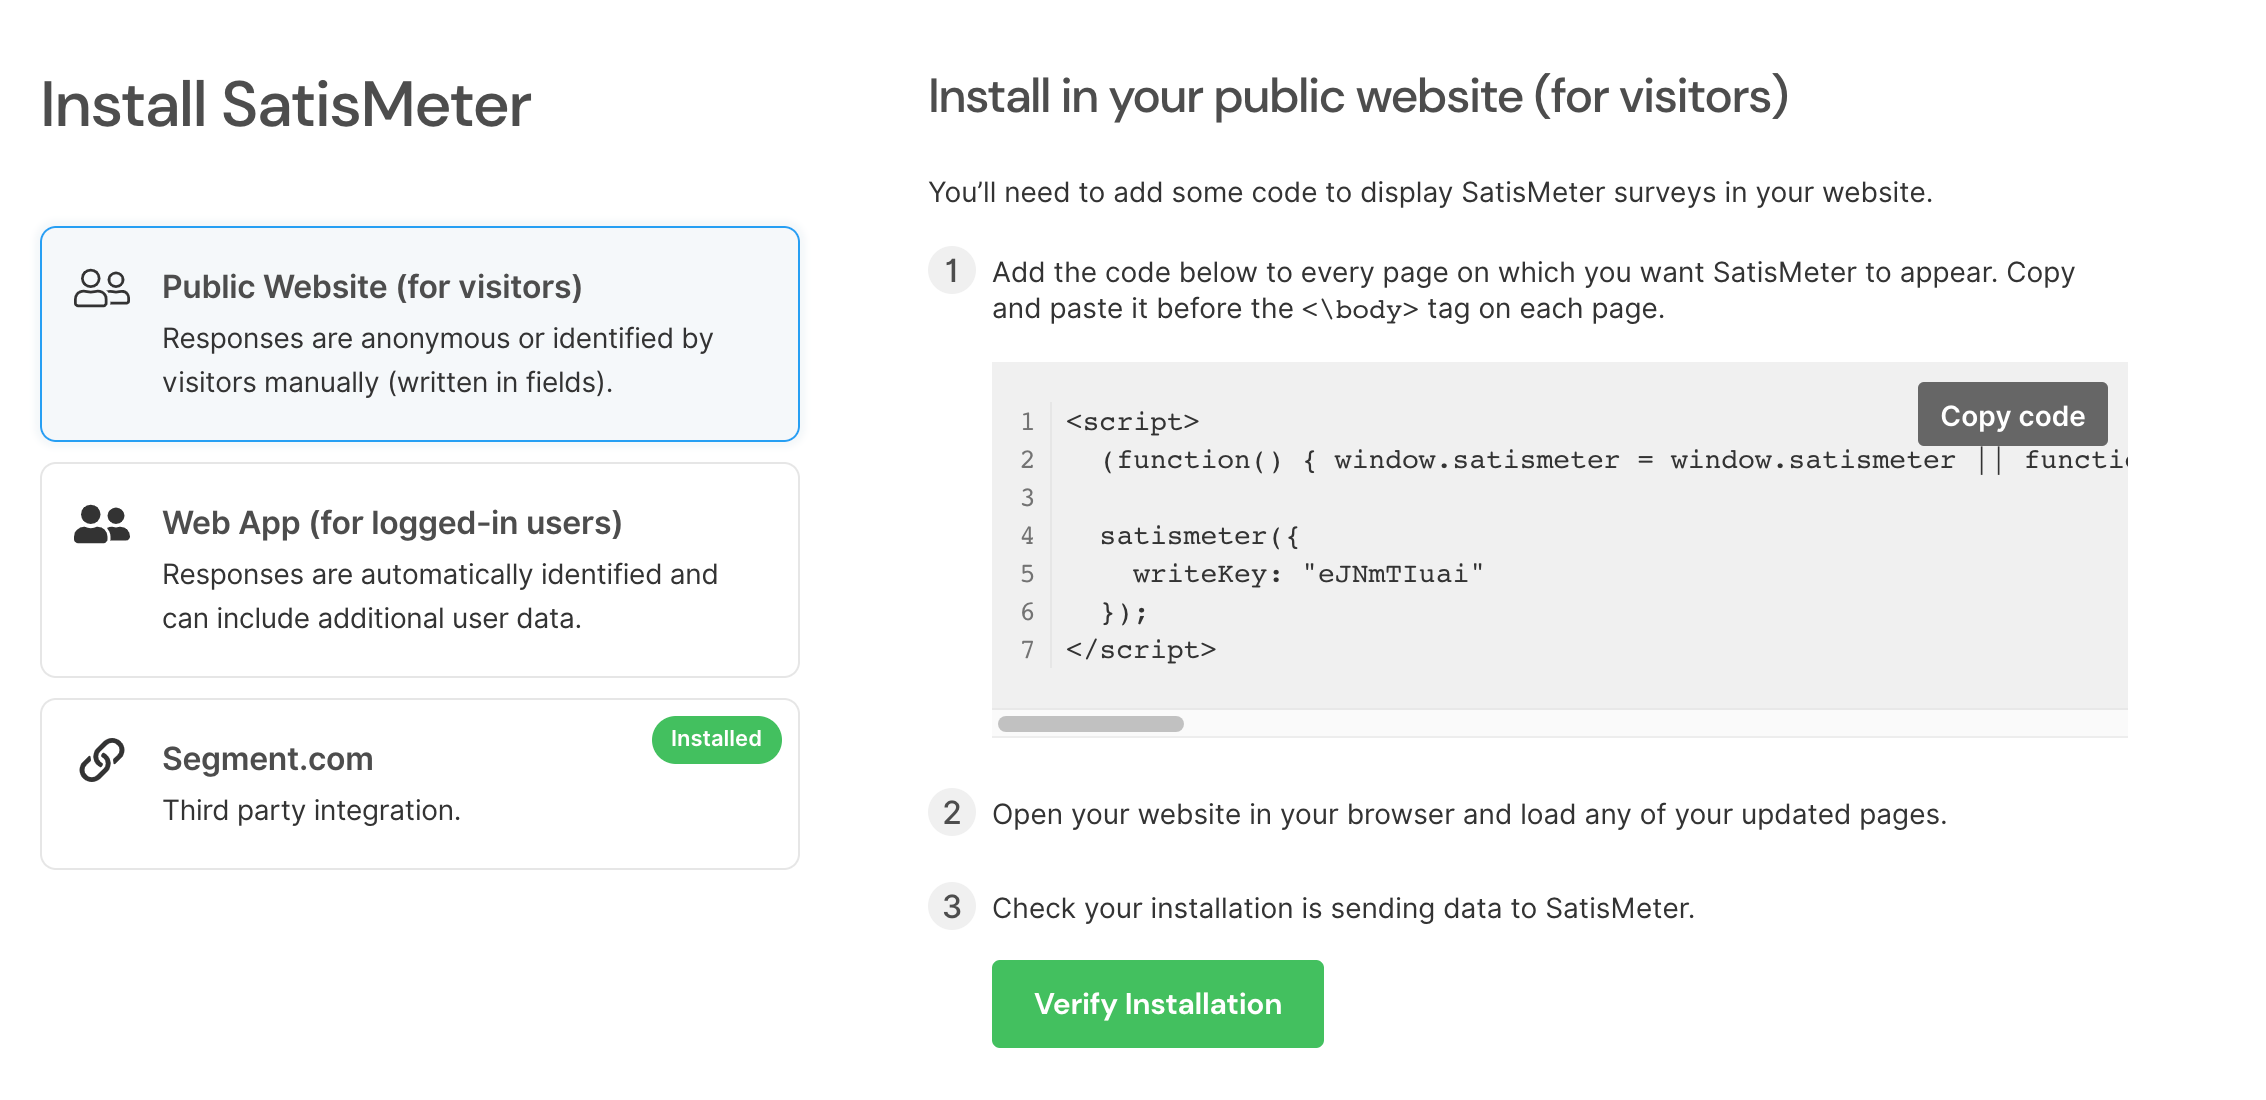 SatisMeter - How to install customer survey code into Website